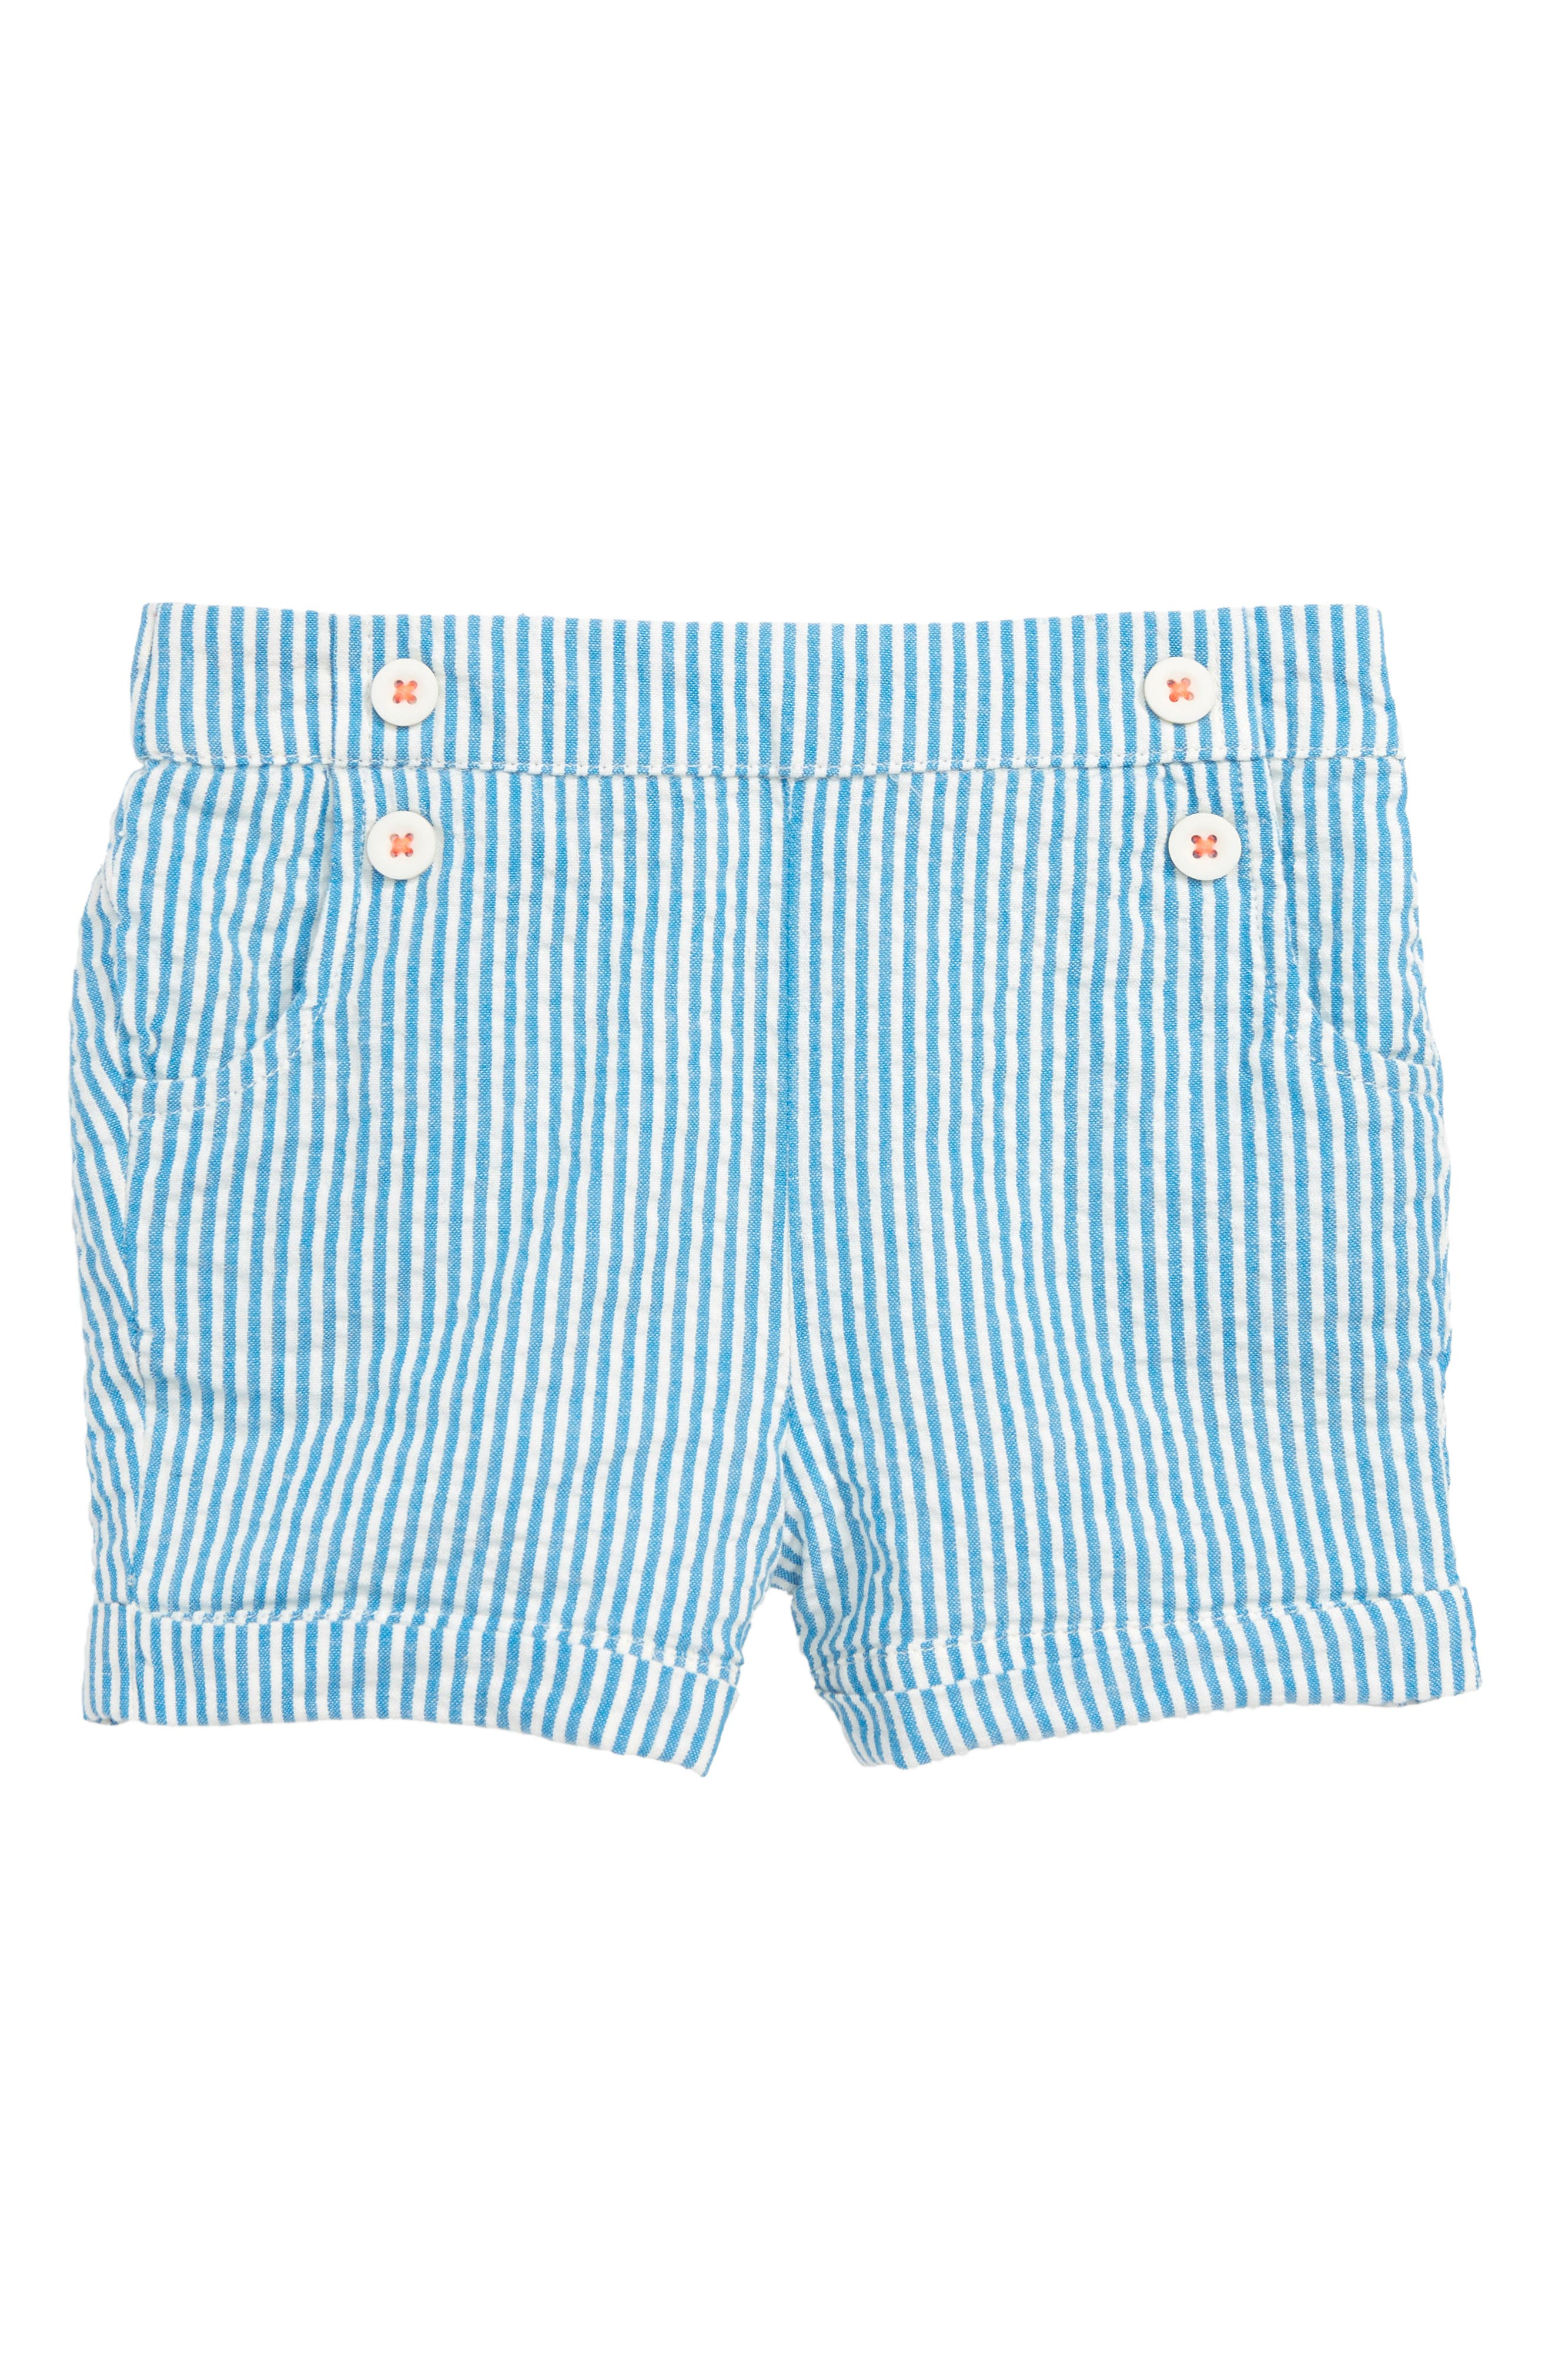 Seersucker Shorts,                         Main,                         color, Fluro Blue/ Ivory Ticking